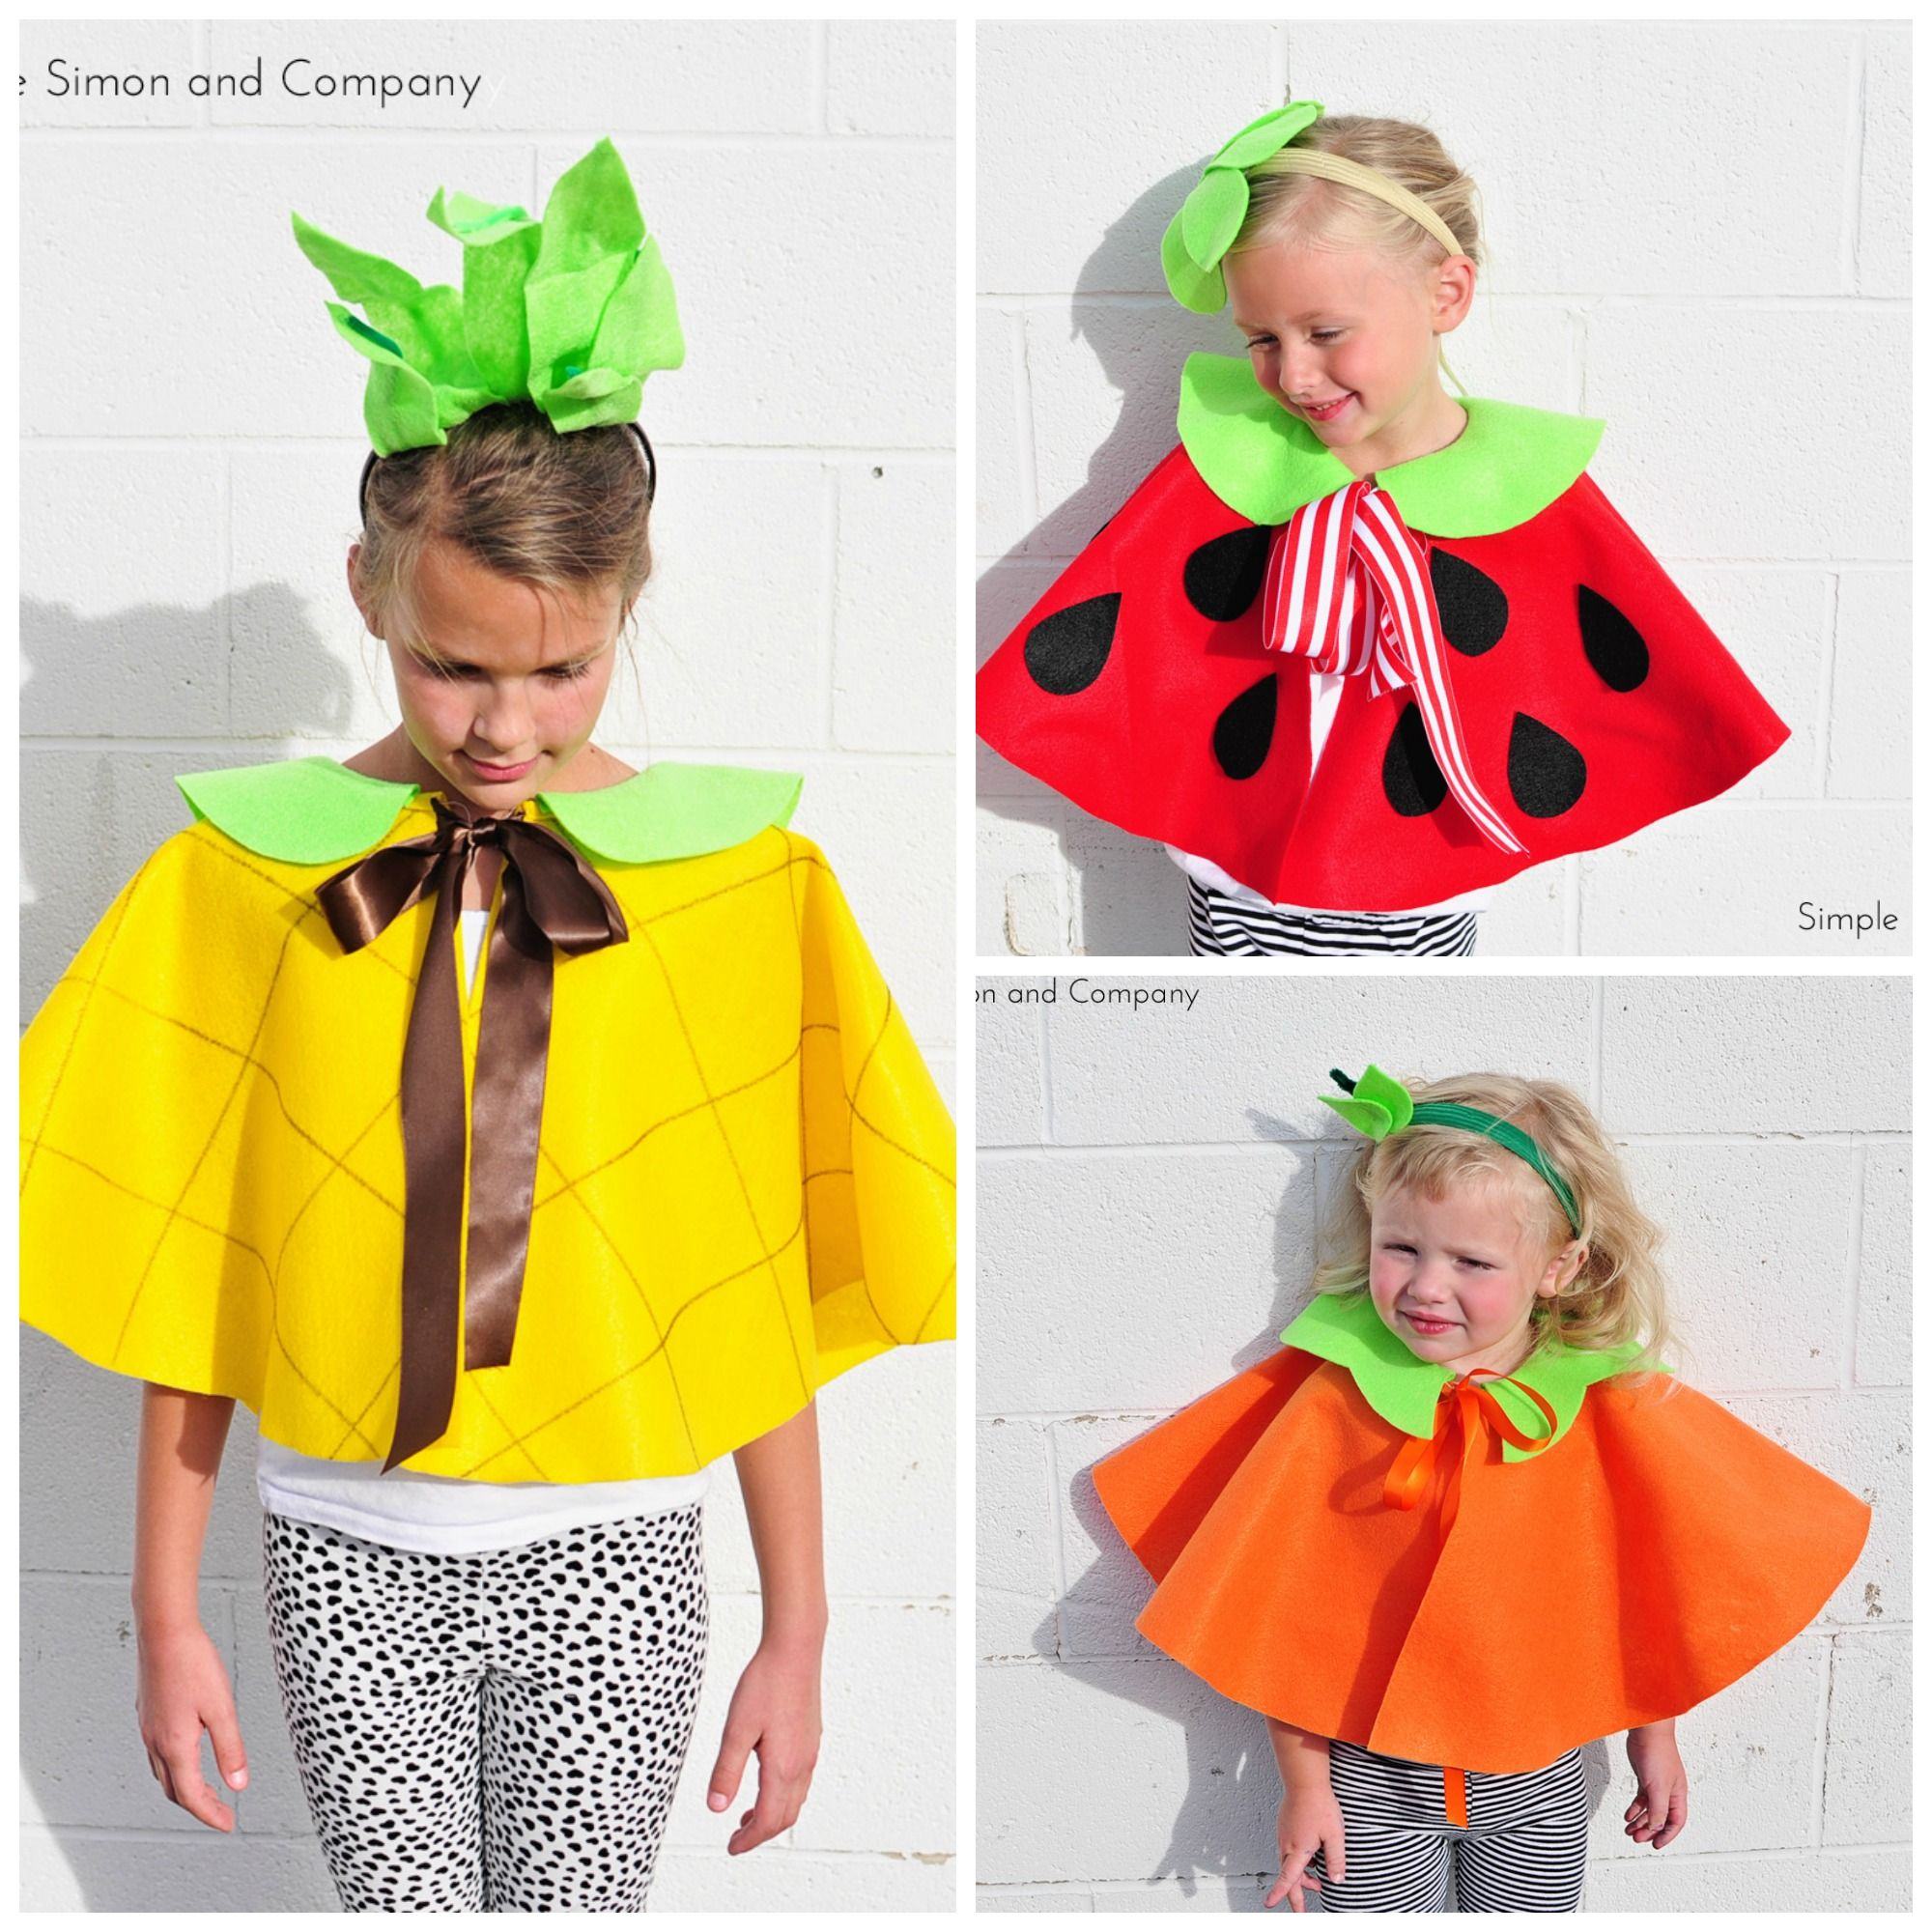 Fruit Costumes Tutorial , Simple Simon and Company